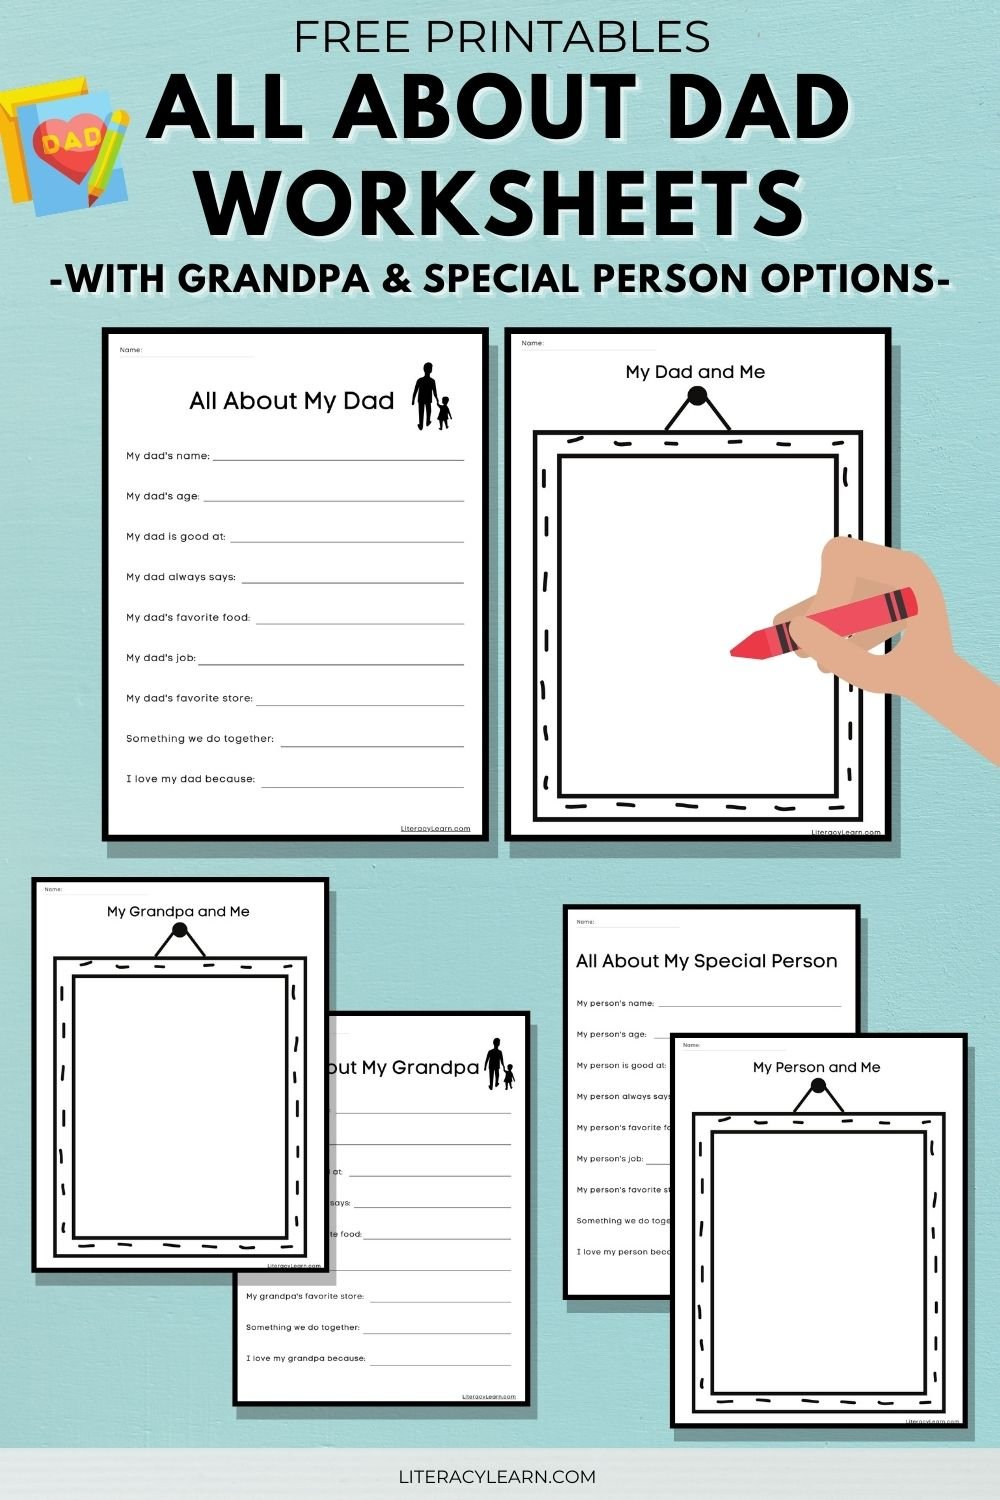 """Pinterest graphic showing the all about my dad and my dad and me worksheets with the words """"Free printables- All about Dad worksheets with grandpa and special person options."""""""